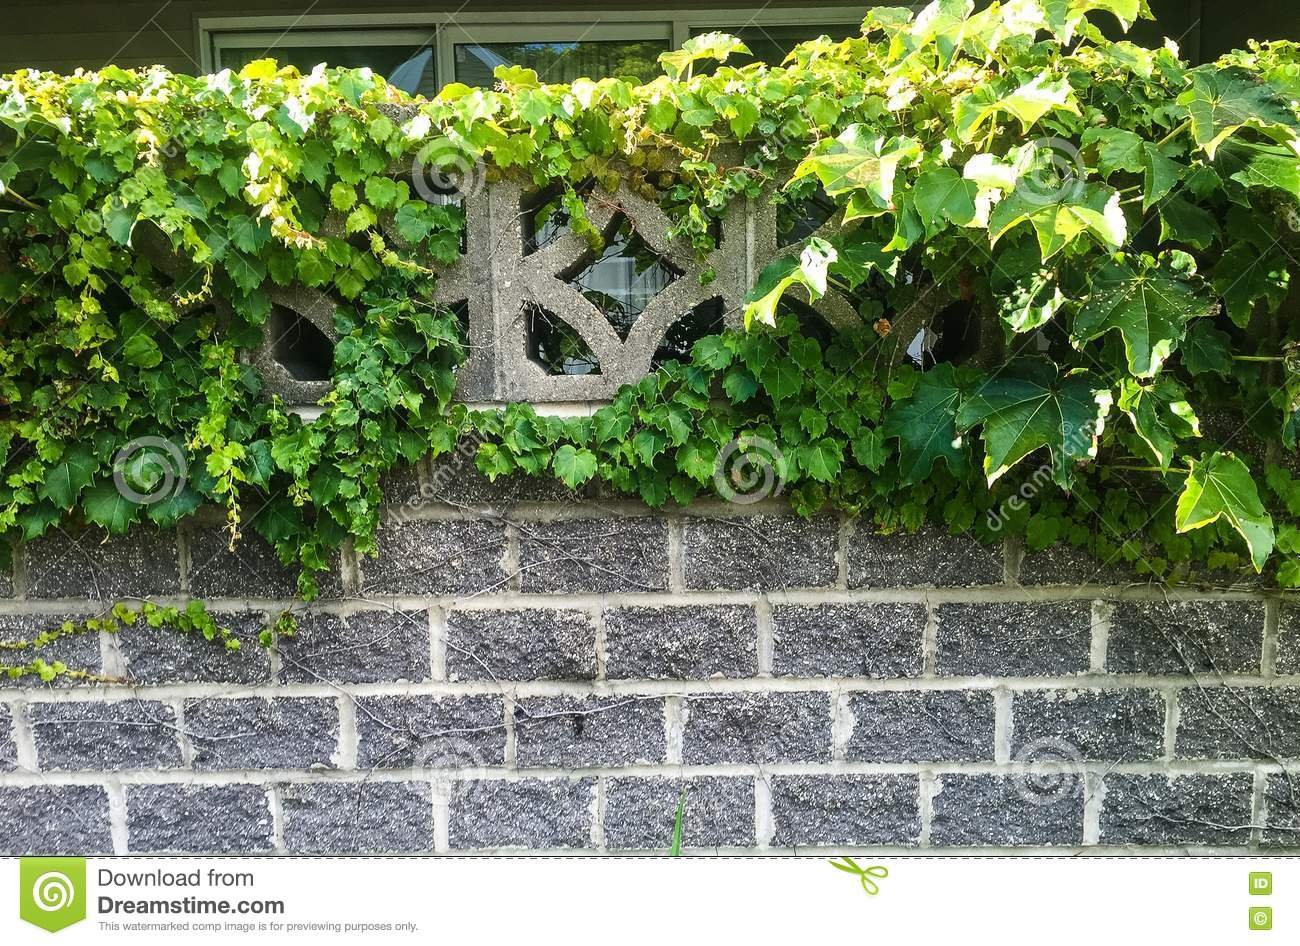 Leafy Green Vines Clinging To Old Brick Garden Wall Stock Photo ...